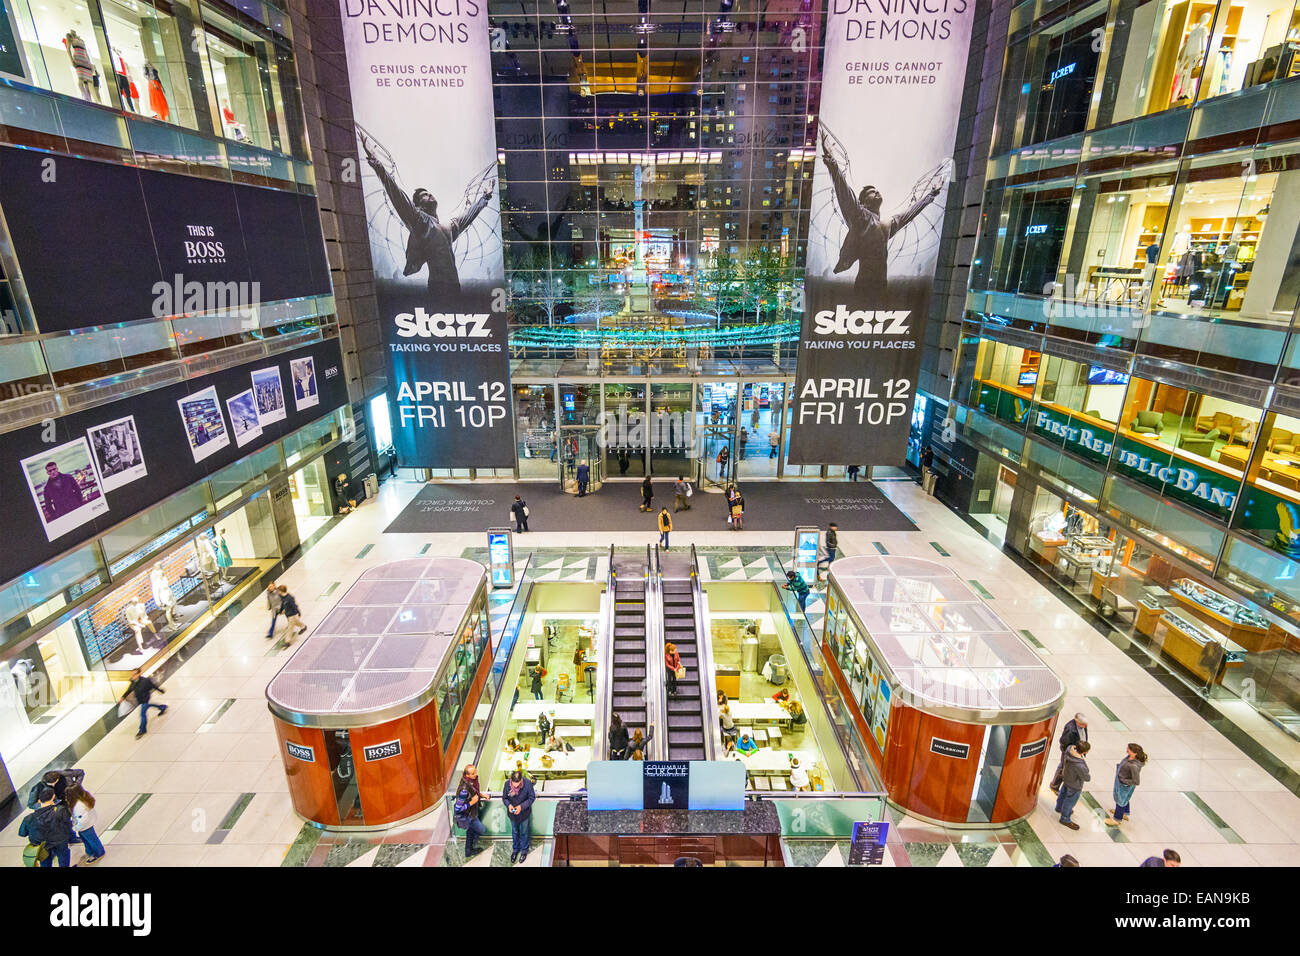 Time Warner Center Mall in New York City. - Stock Image